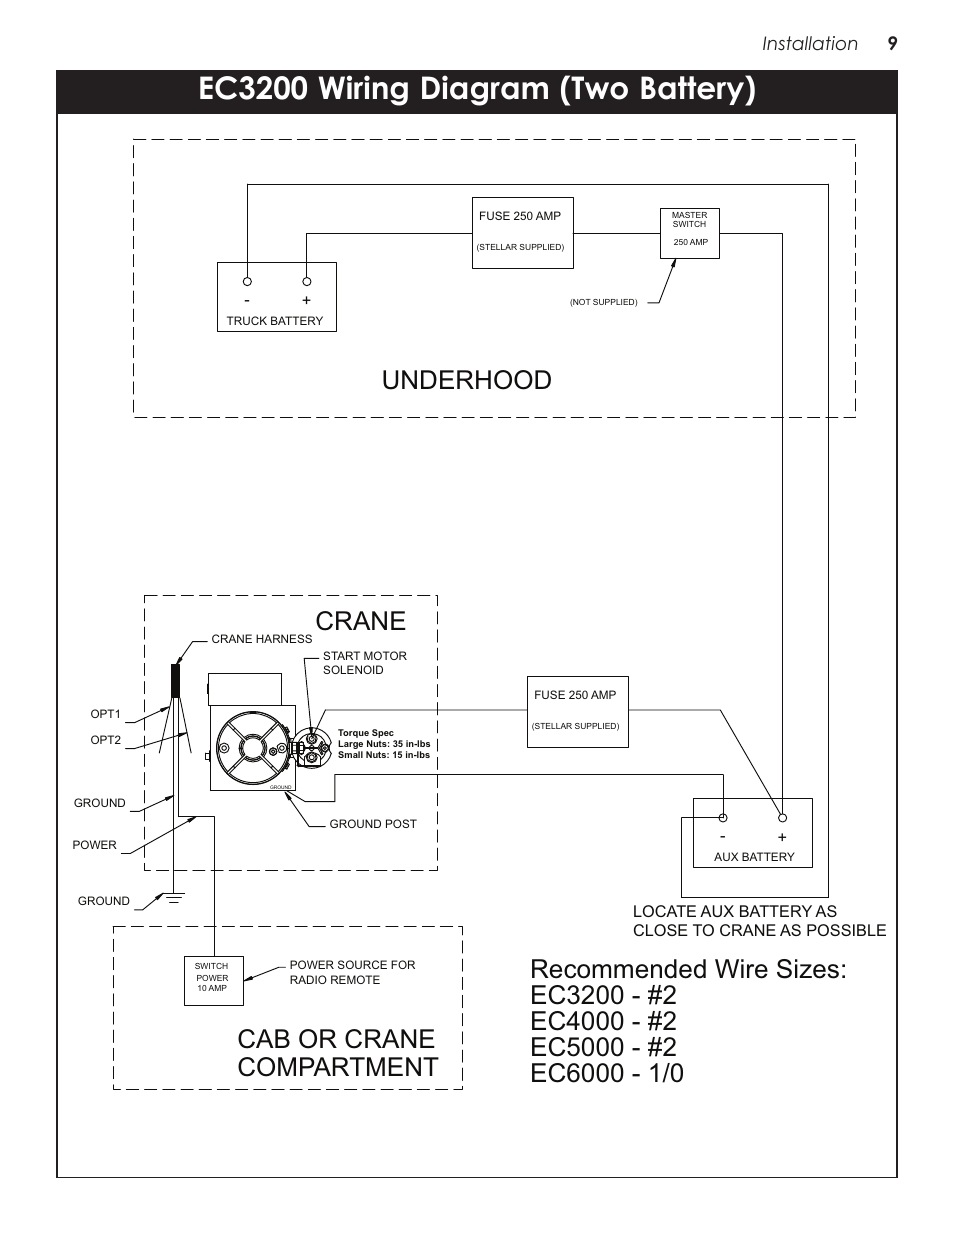 Ec3200 wiring    diagram     two battery   Ec3200 wiring    diagram